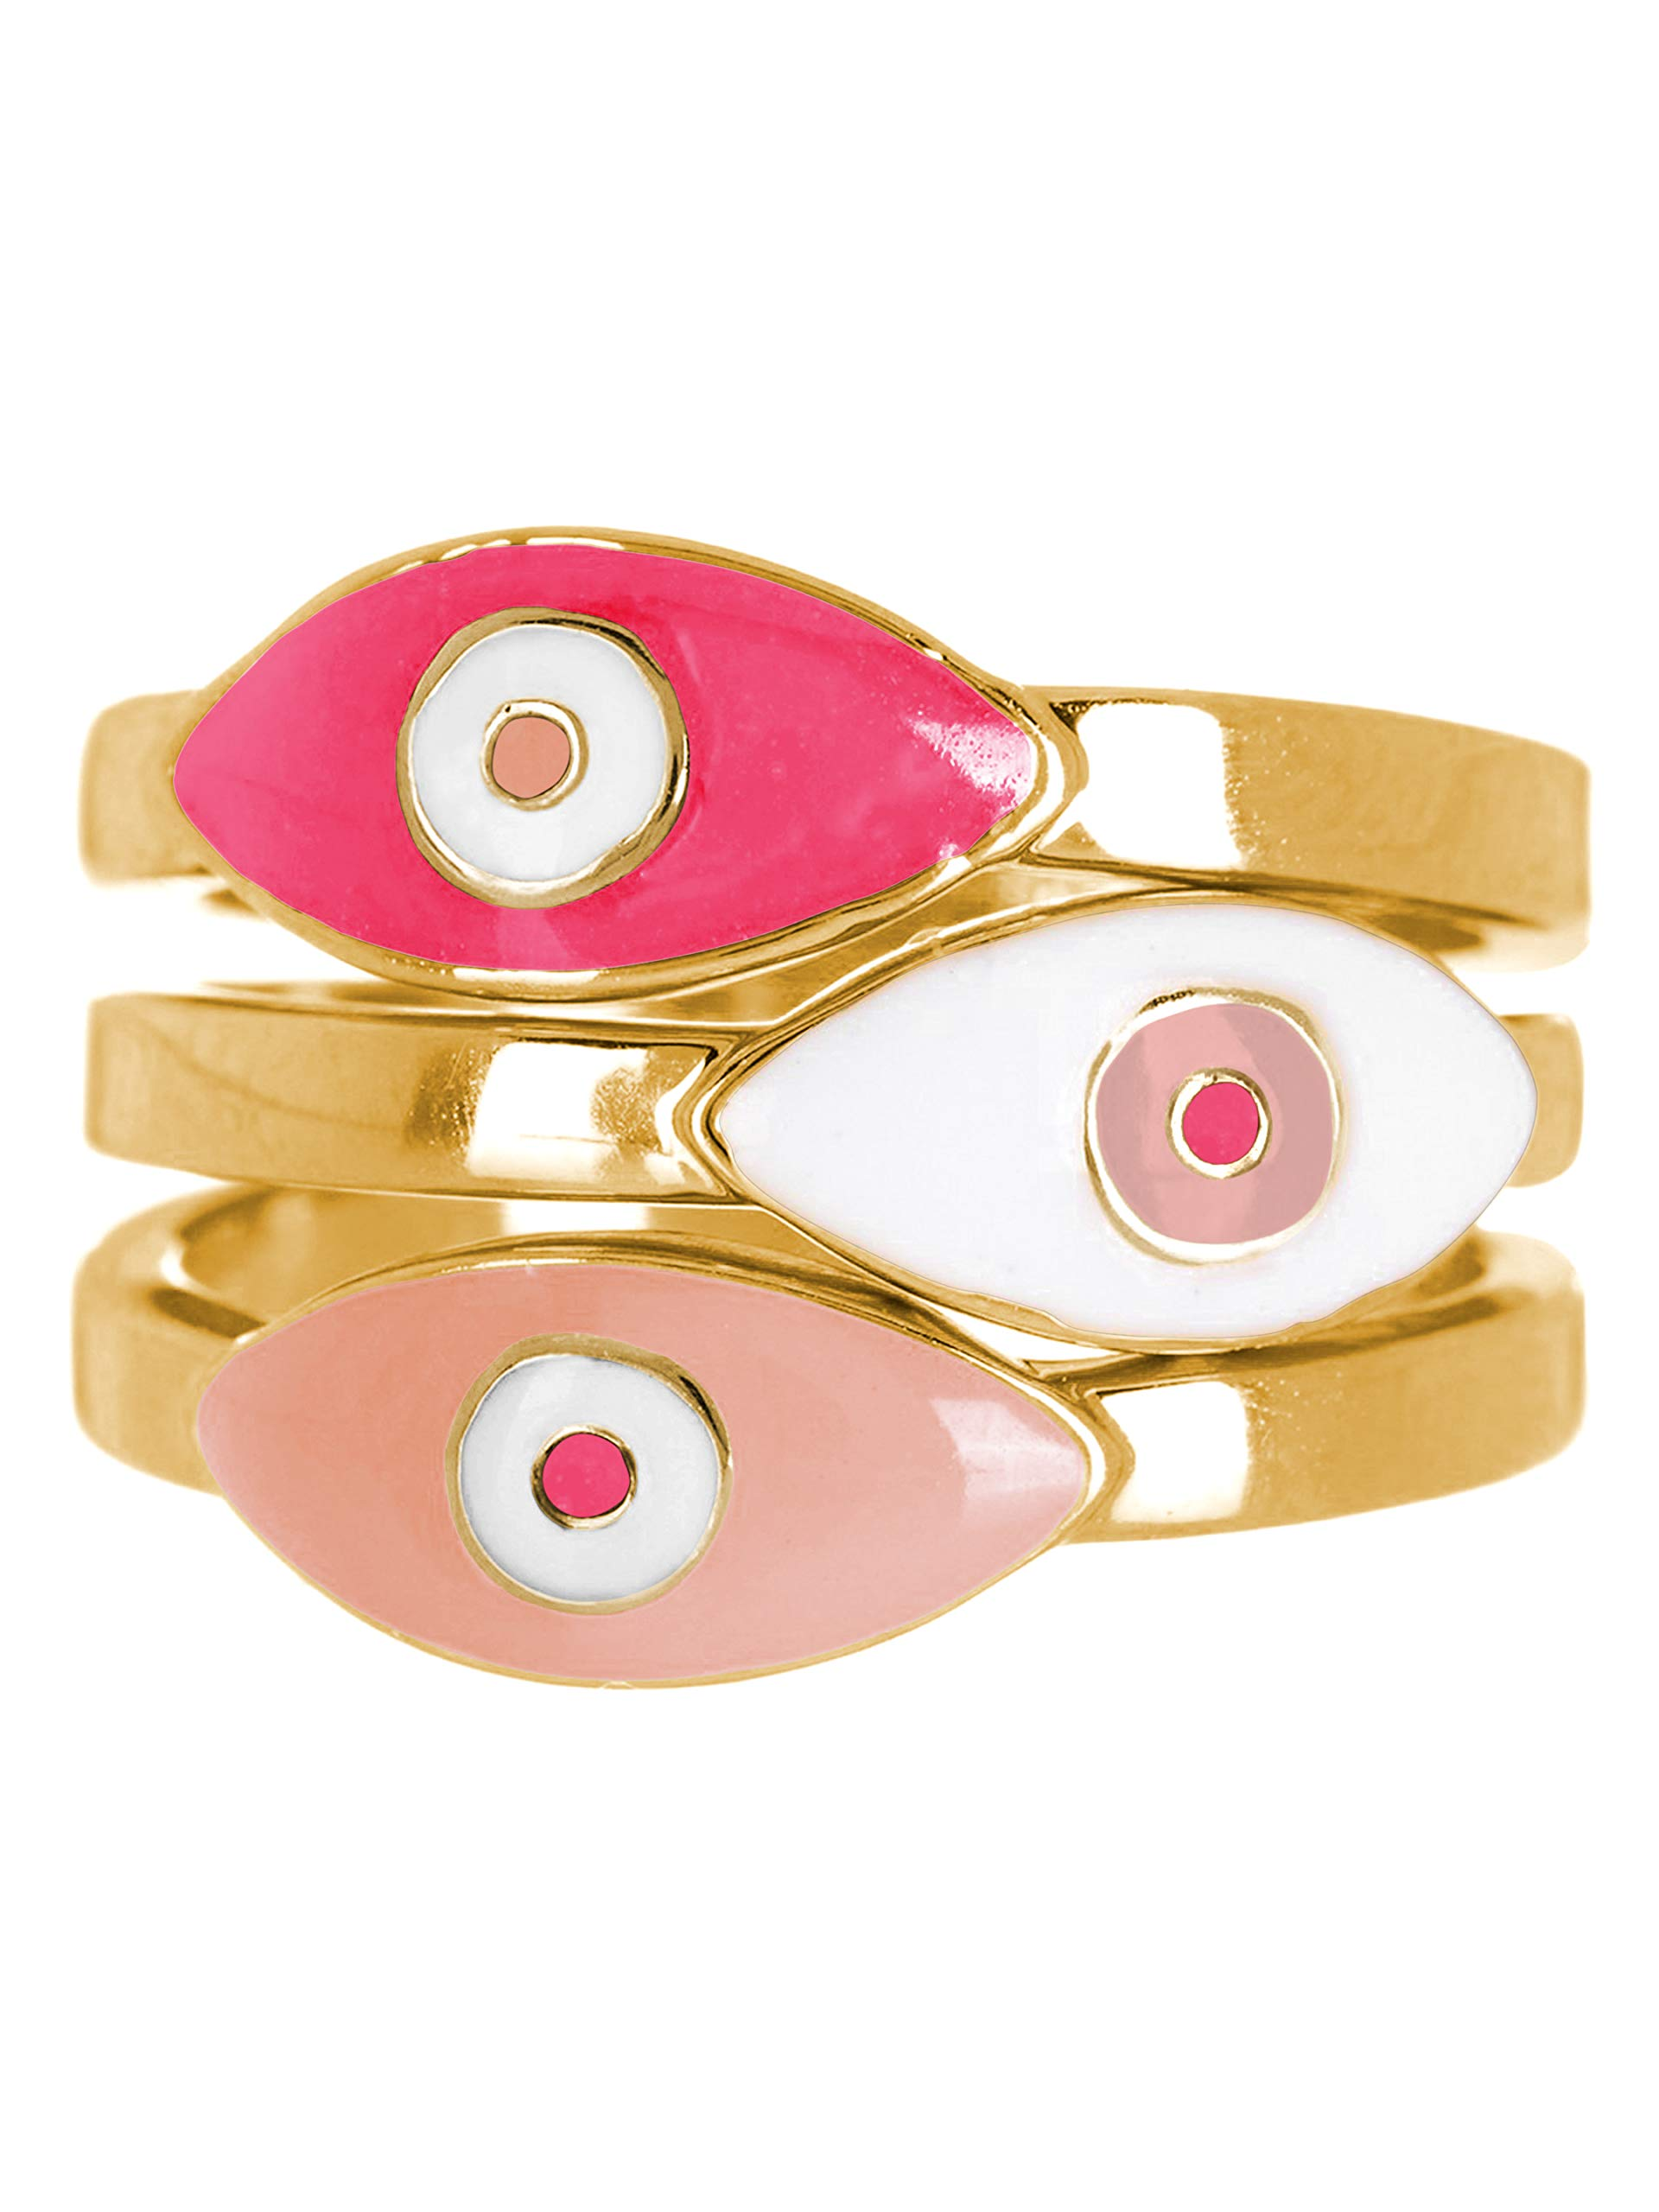 Sterling Forever - Gold Plated 3-Piece Enamel Evil Eye Ring Set in (Shades of Pink, 8)